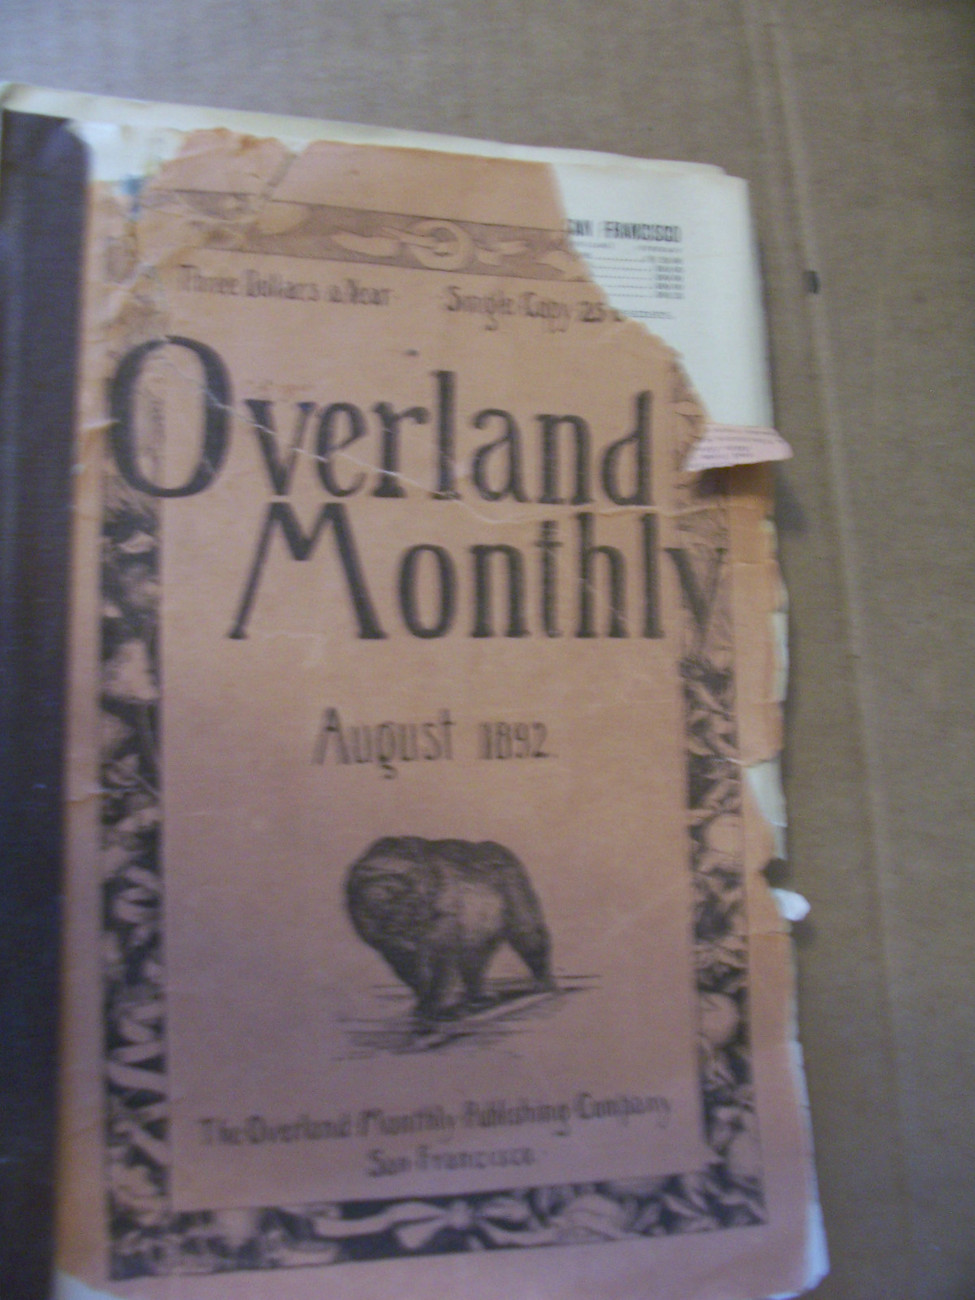 OVERLAND MONTHLY AUGUST 1892 STAGE MENDOCINO REDWOOD RODEO CANON REPEATING RIFLE